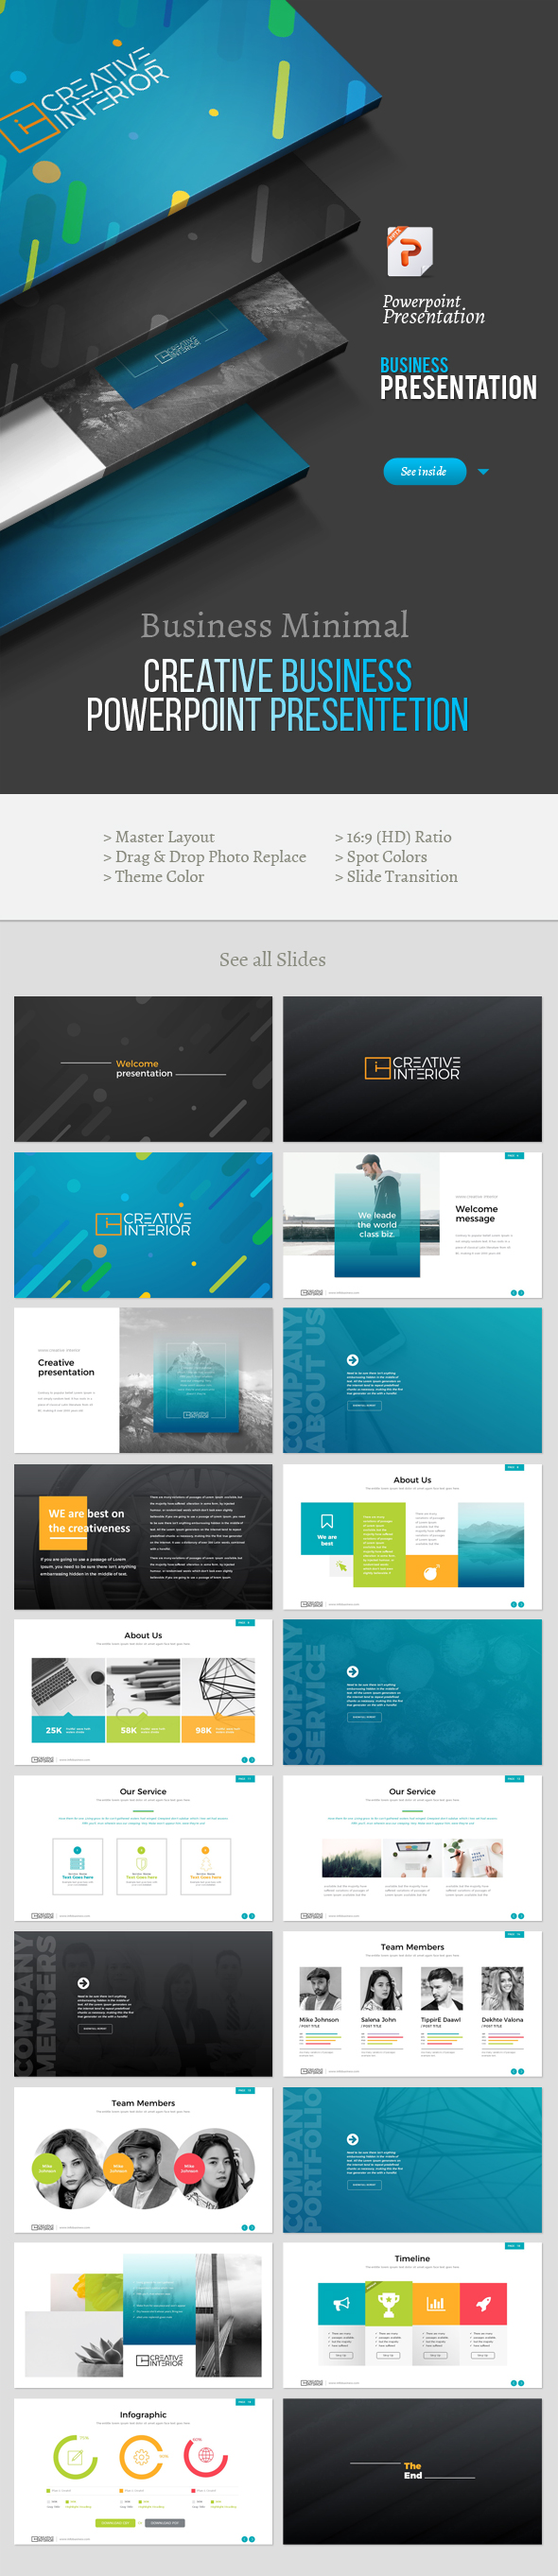 Creative Business Powerpoint Presentation - Creative PowerPoint Templates